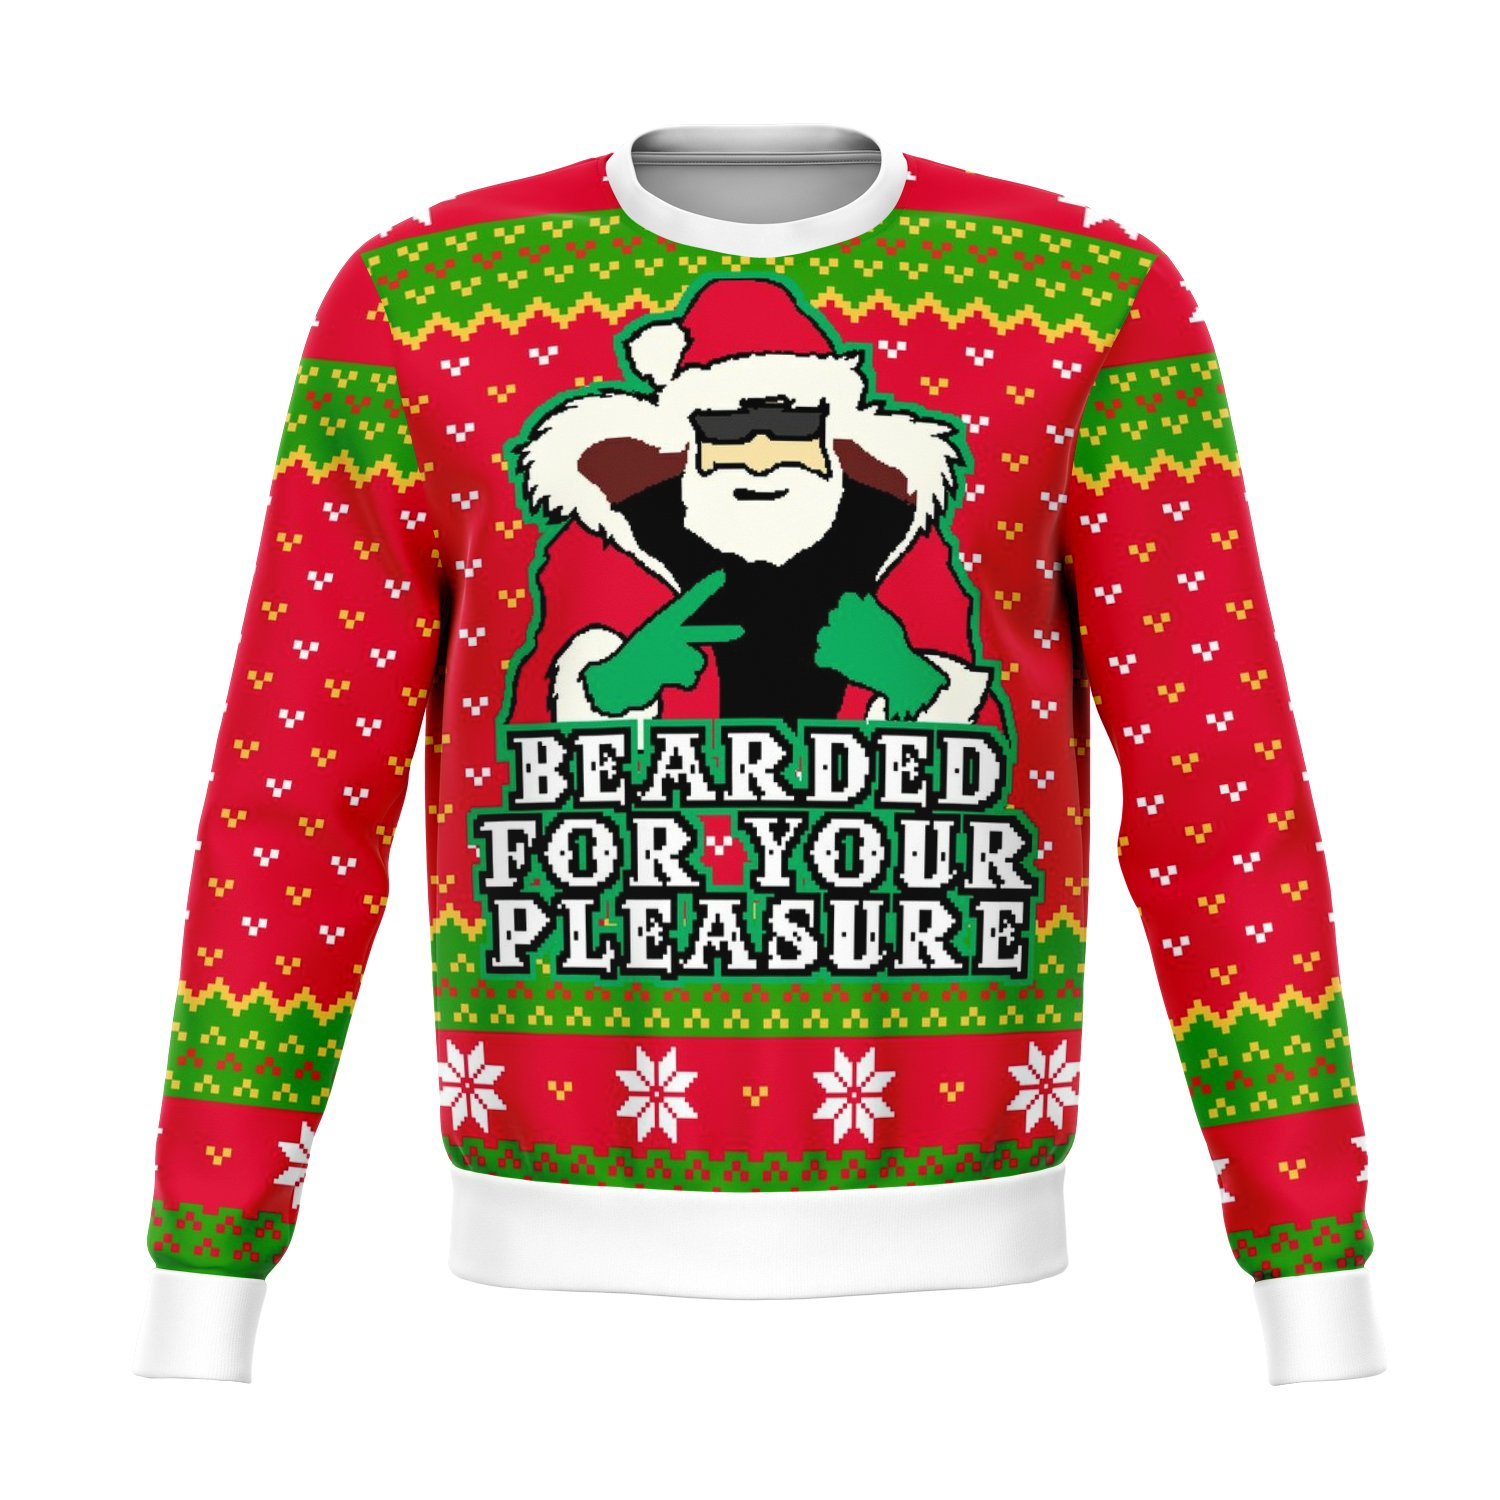 Beard For Your Pleasure Funny Ugly Sweater